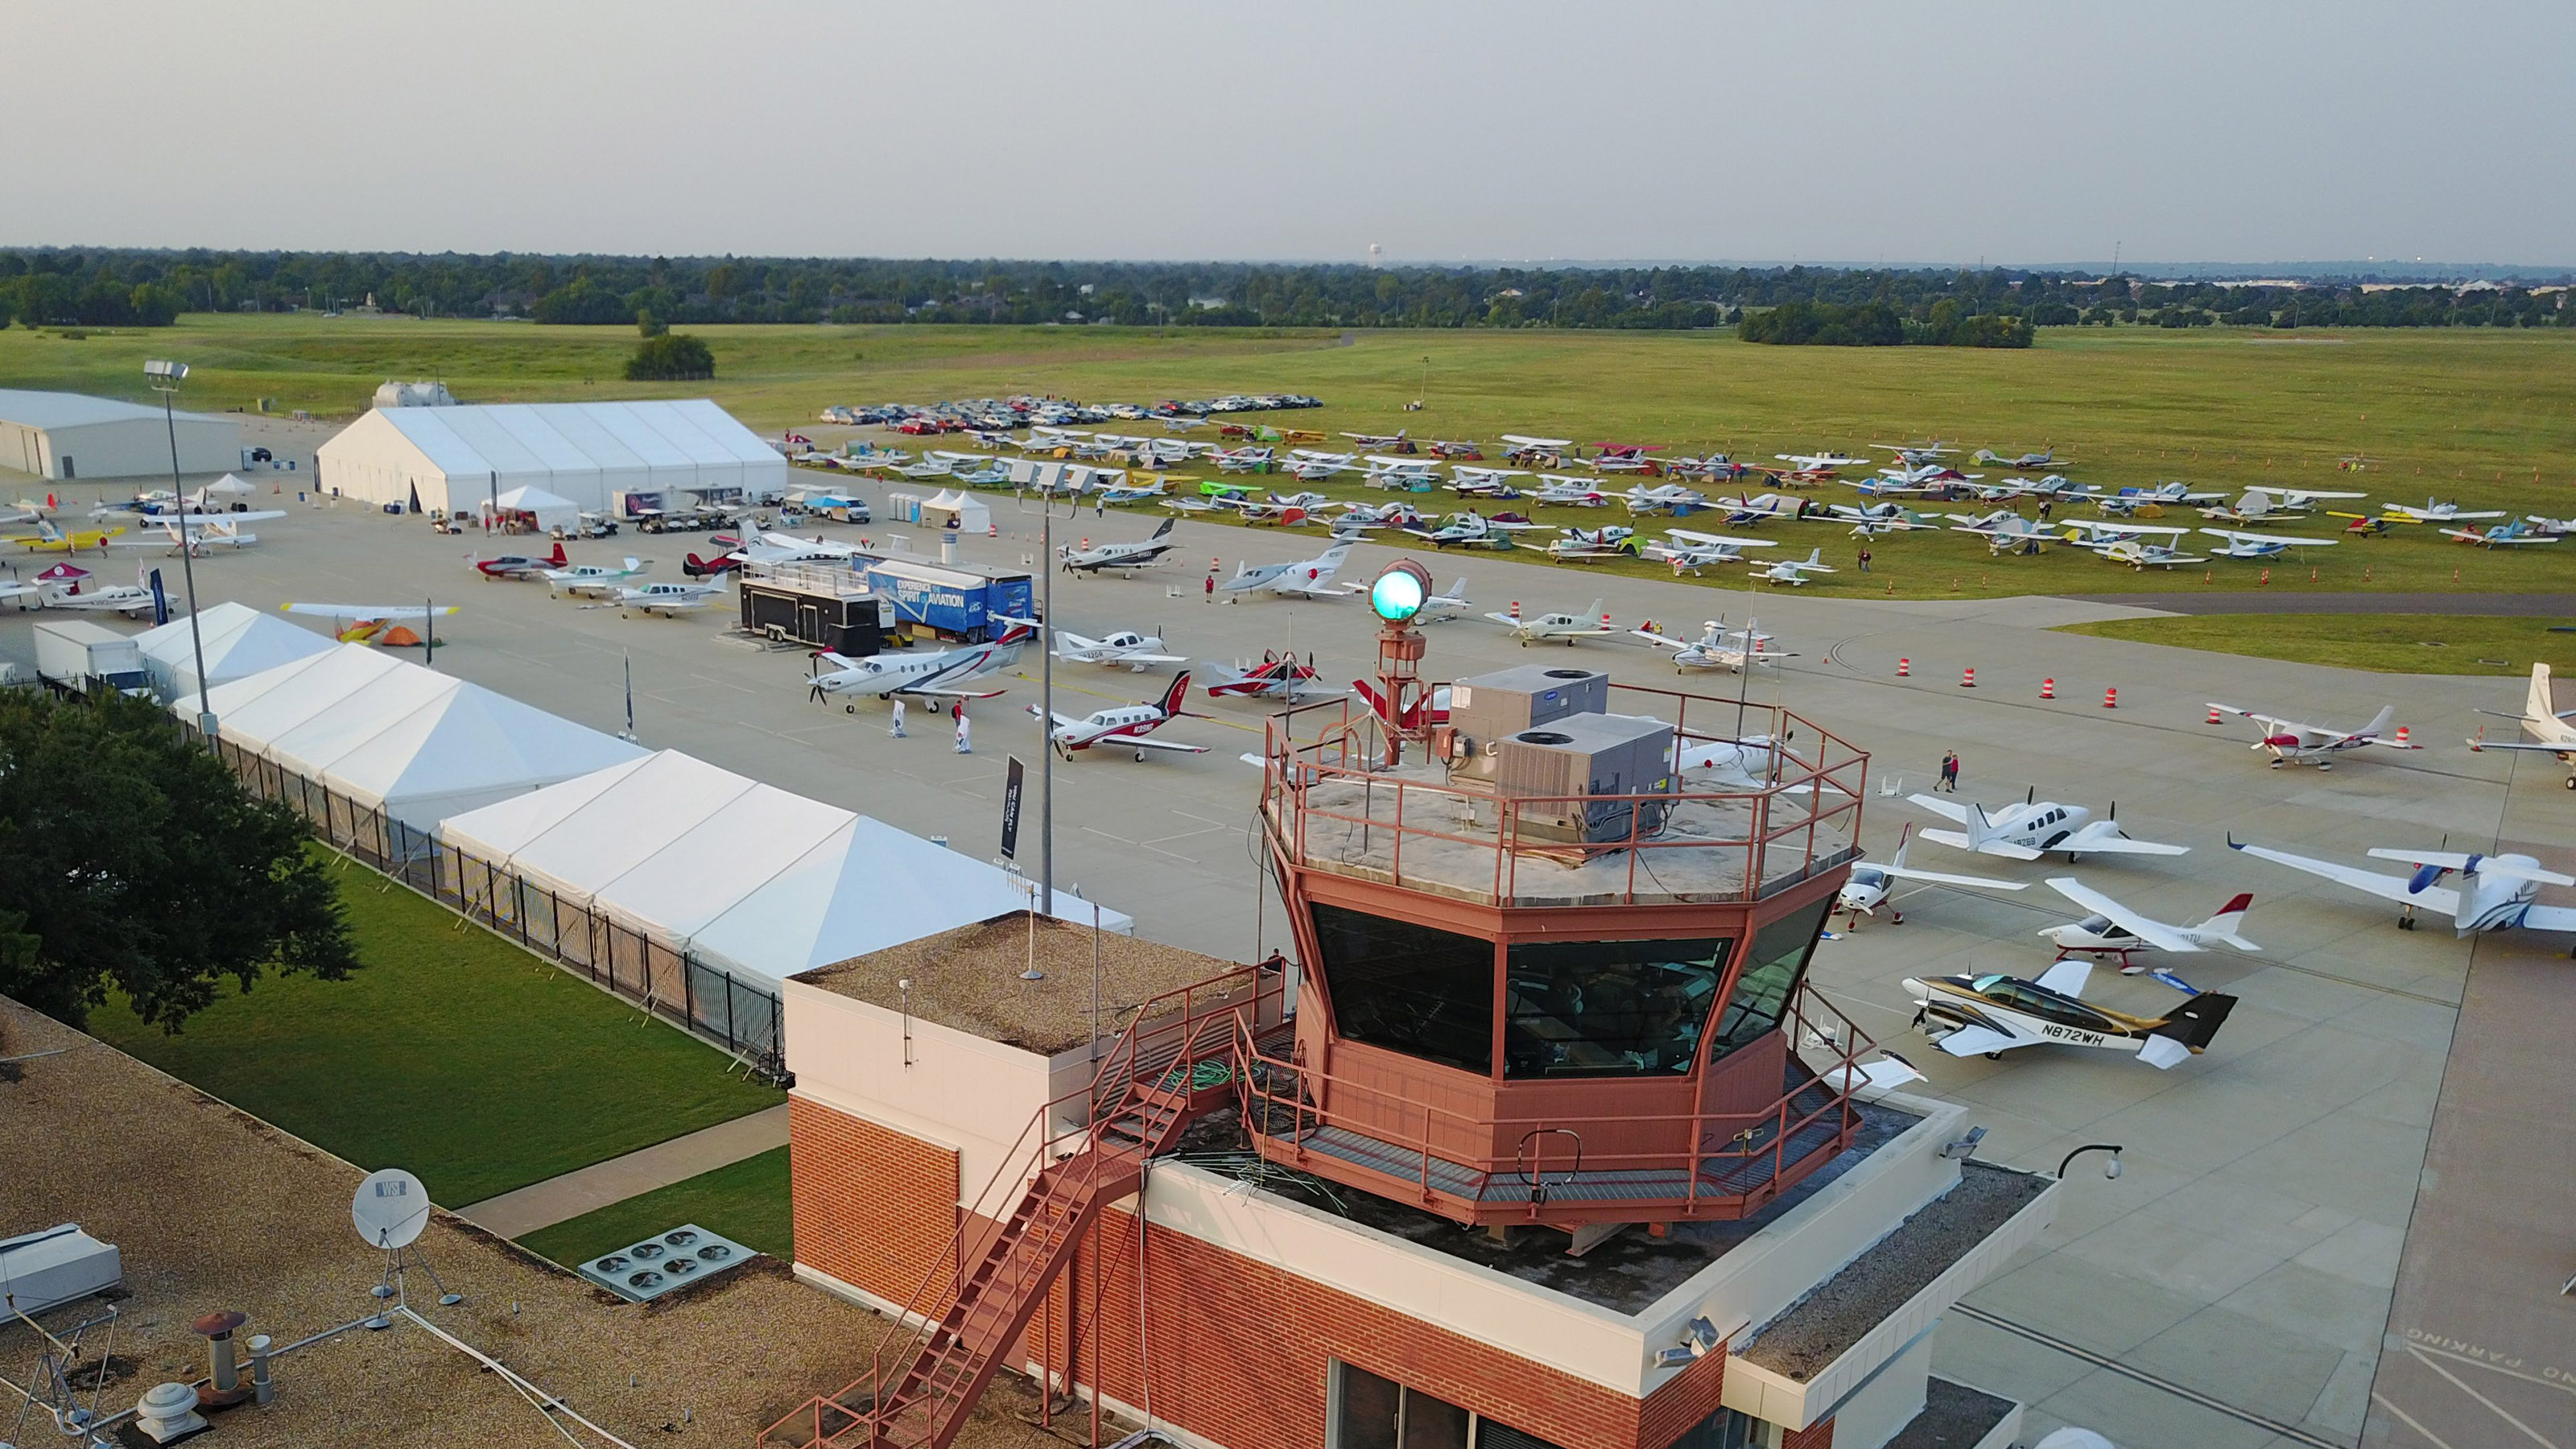 Day breaks over the University of Oklahoma Westheimer Airport in Norman on Saturday, Sept. 9, welcoming AOPA's 2017 Norman Fly-In. Photo by Walt Strong.